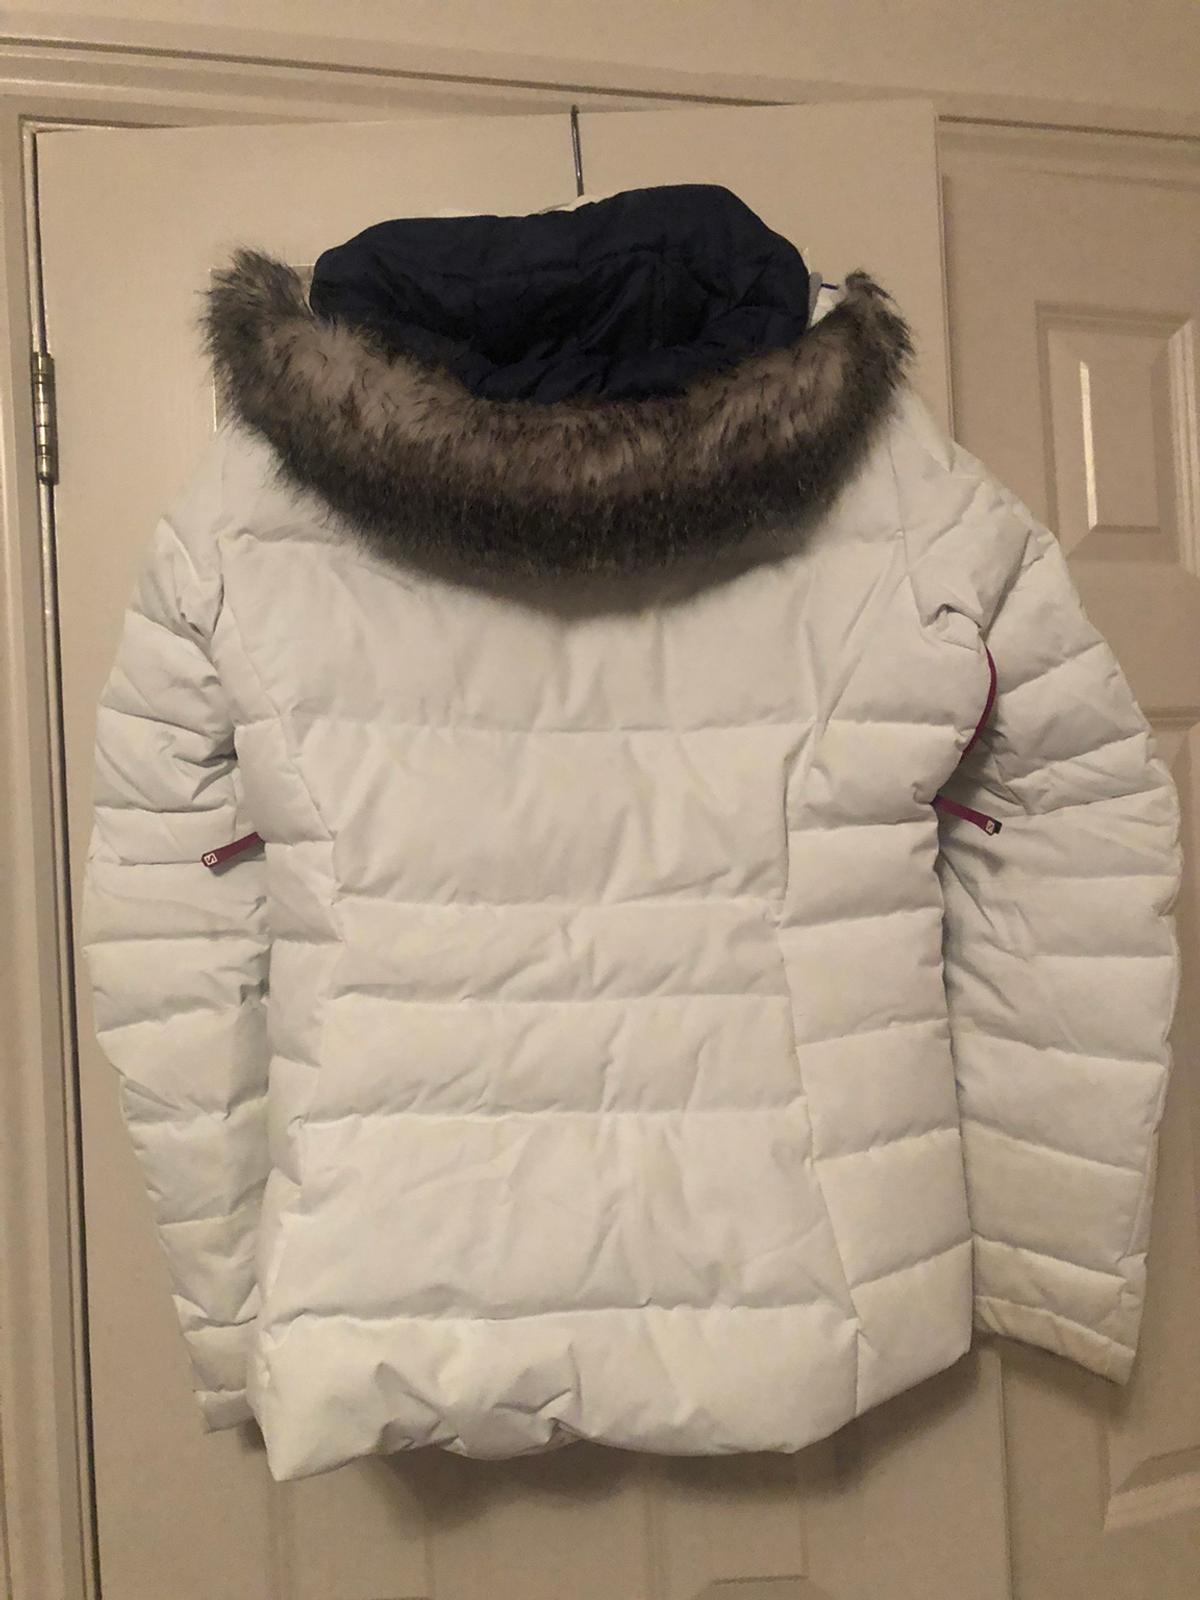 White Salomon ladies ski jacket which has been worn once. Unfortunately doesn't fit now :-( Only worn for 2 days. Amazing jacket in excellent condition. I feel guilty for selling it.